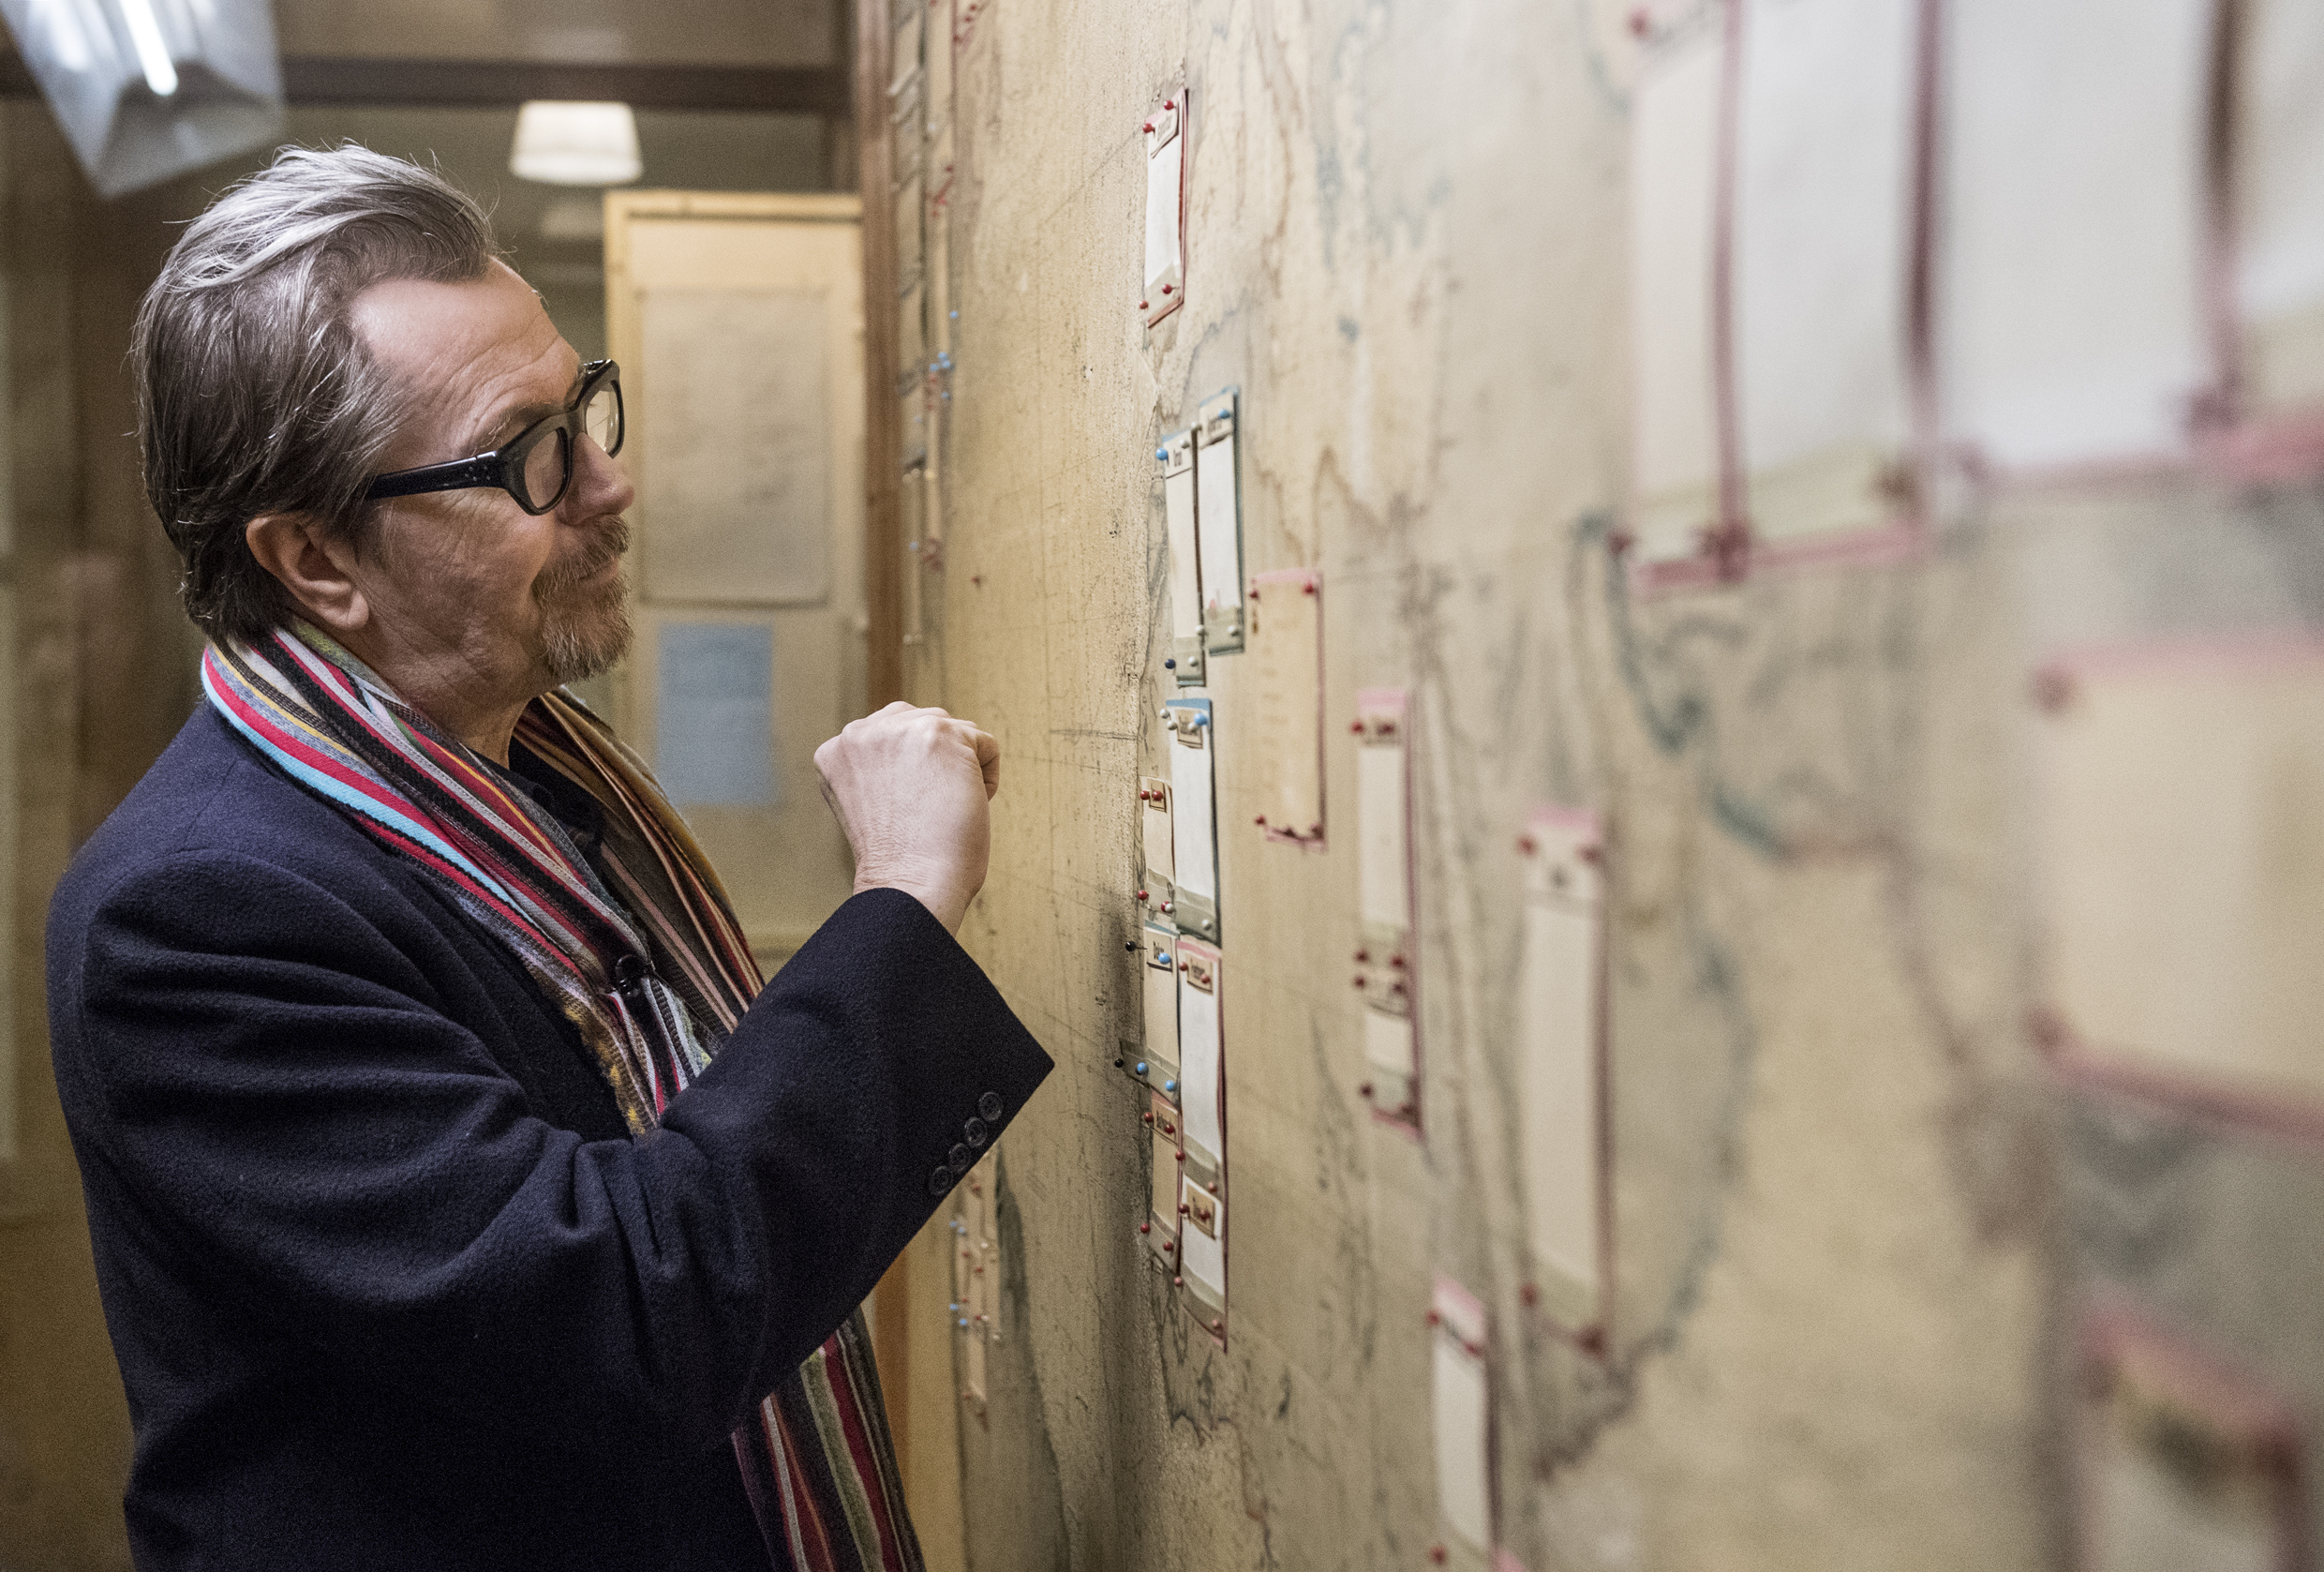 Actor Gary Oldman visits Churchill War Rooms during promotion for his film Darkest Hour